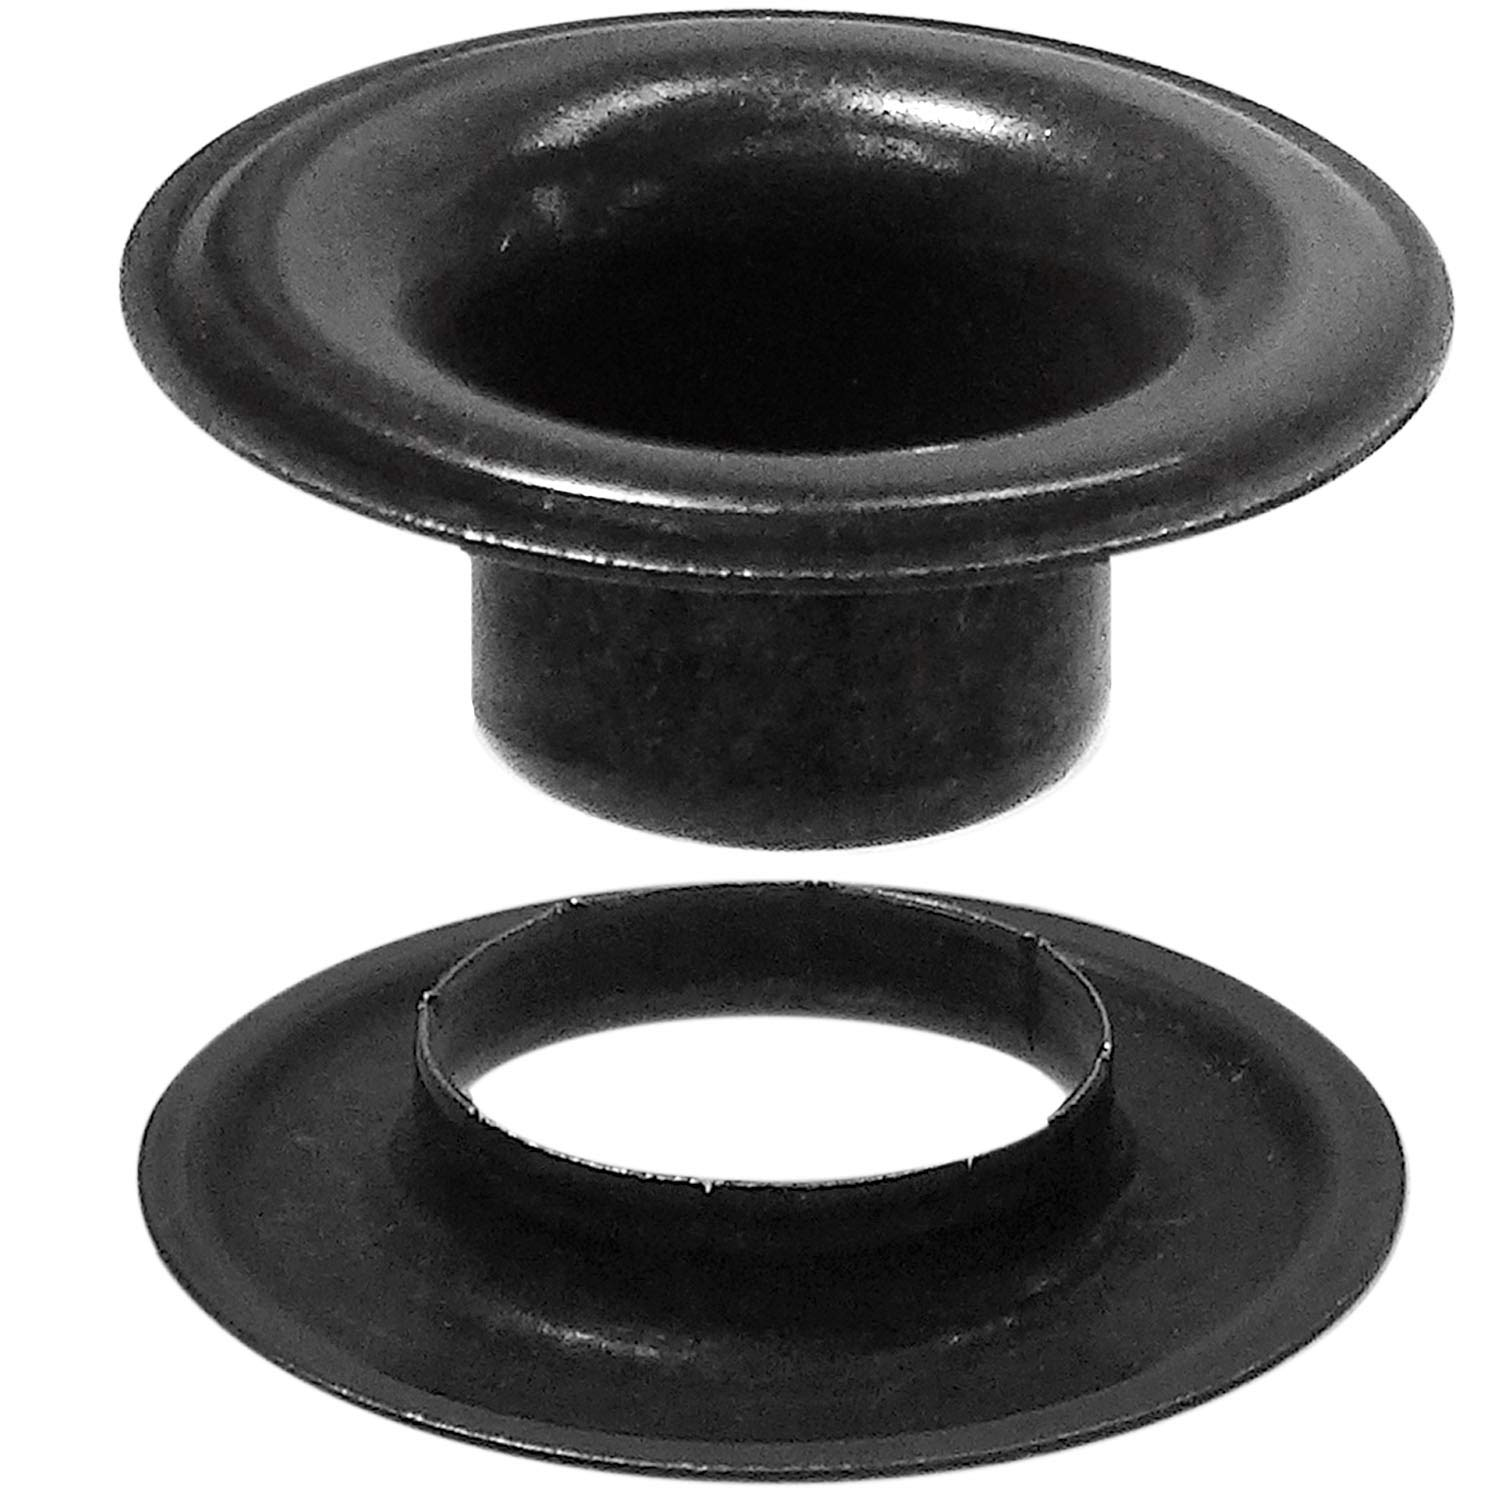 Stimpson Sheet Metal Grommet and Neck Washer Dull Black Chem Durable, Reliable, Heavy-Duty #4 Set (3,600 Pieces of Each)